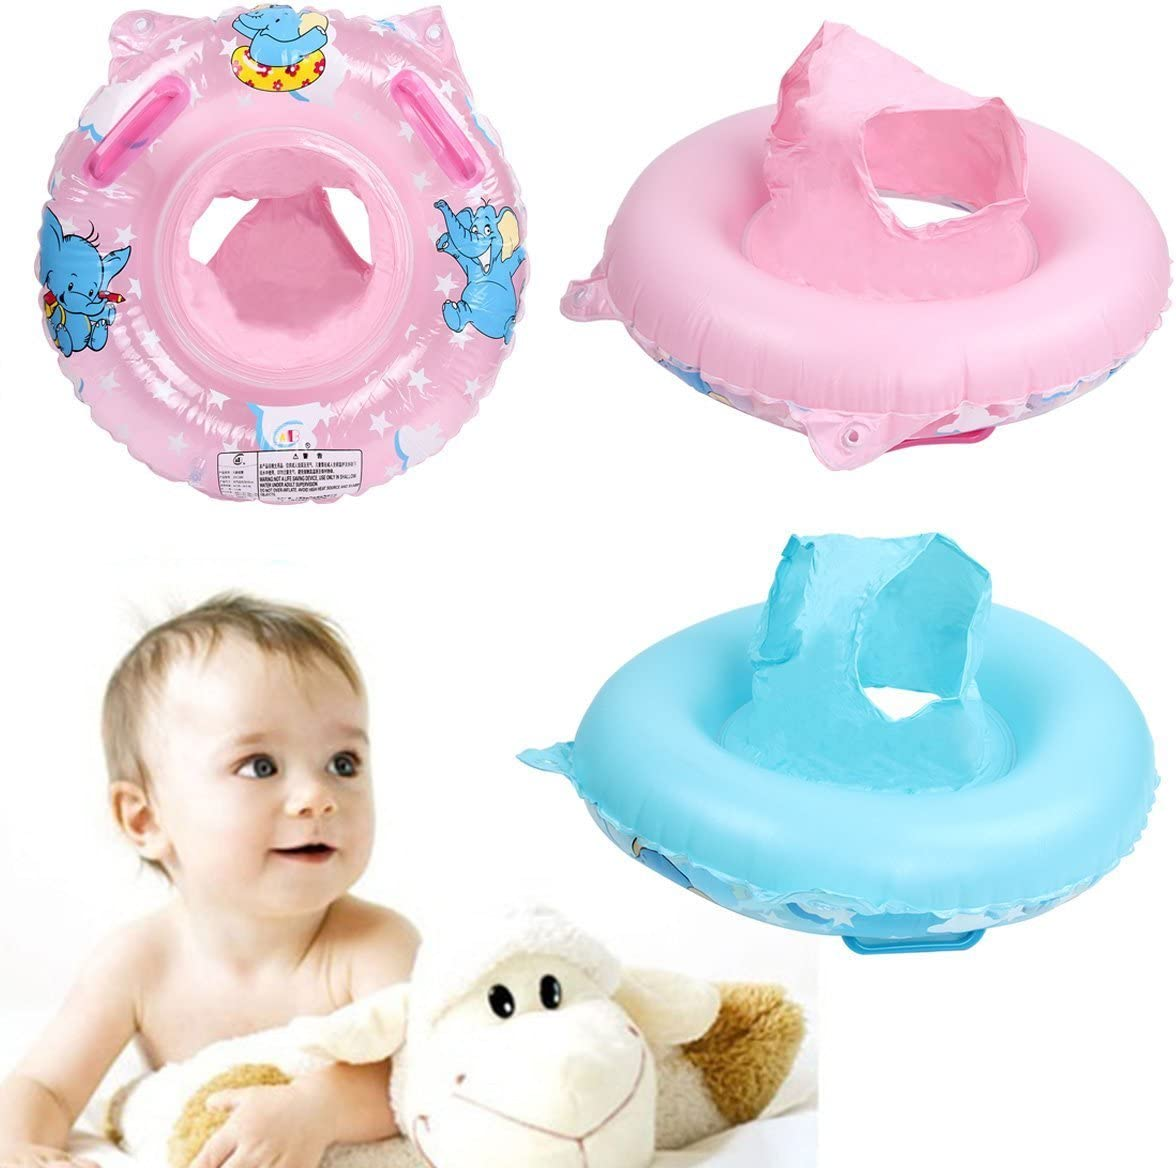 Mochiglory Blue Baby Elephants Swimming Ring Seat Environmental PVC Material Safety Deepen